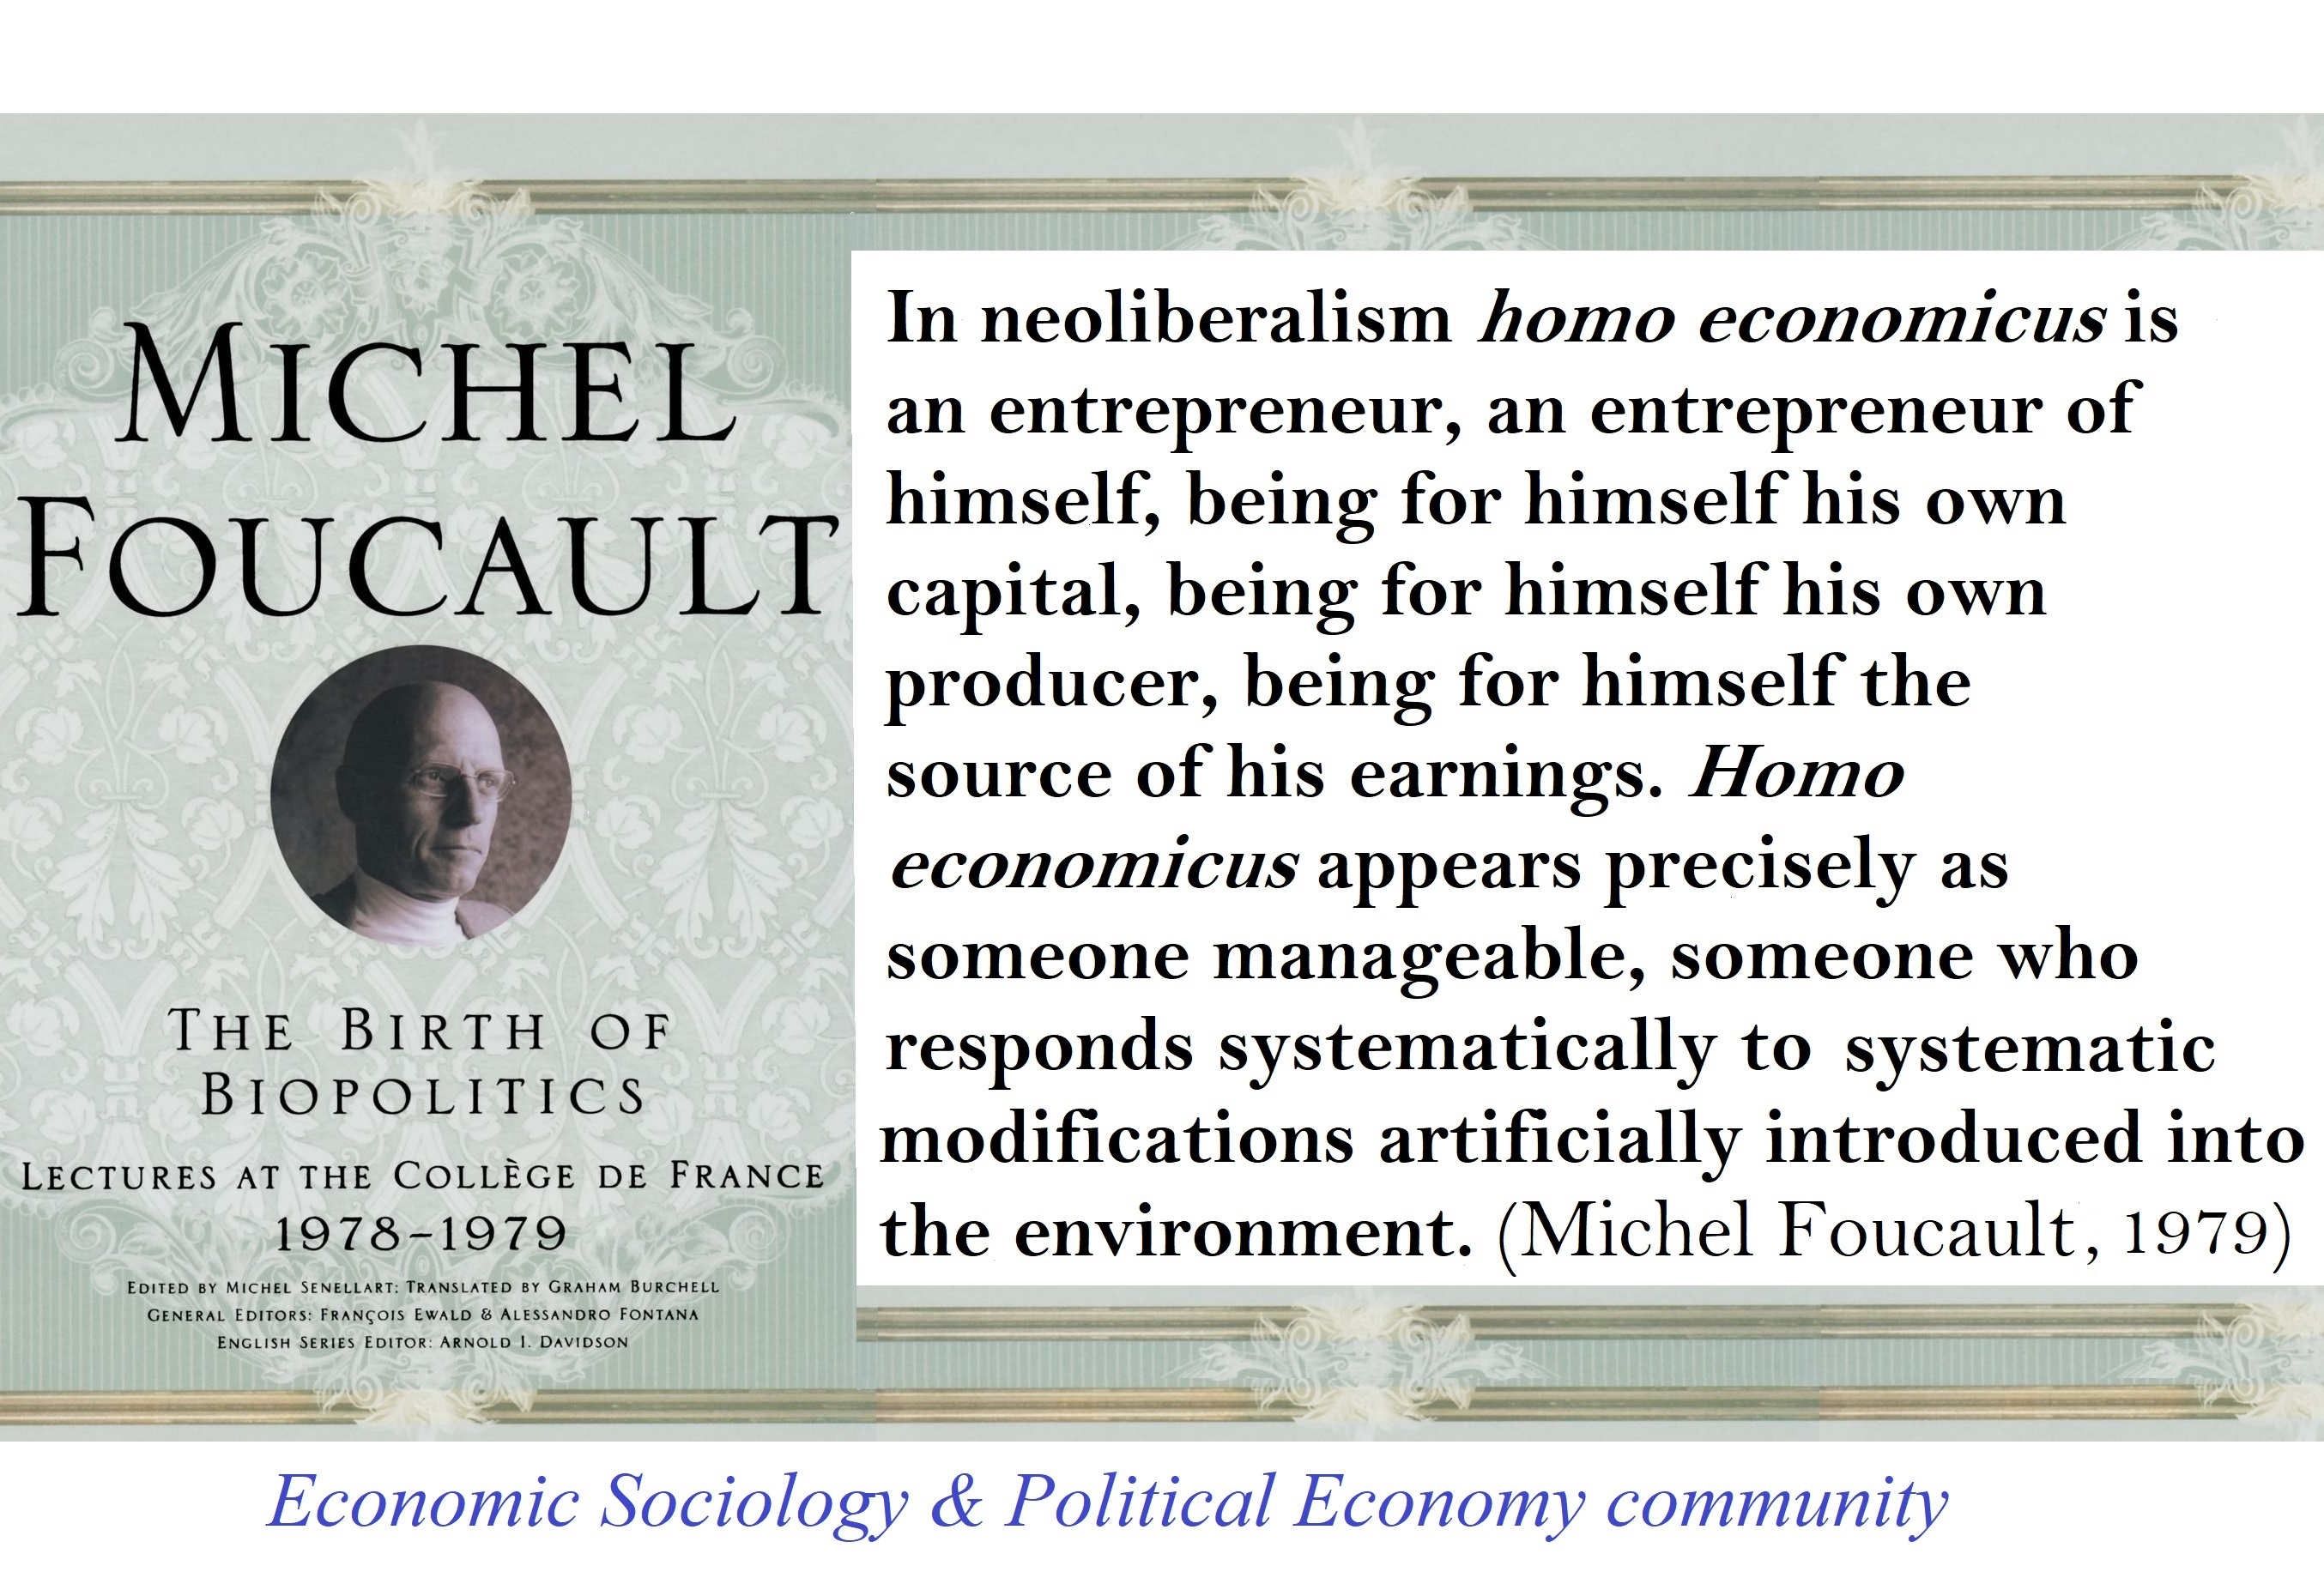 Foucault The Birth of Biopolitics Neoliberalism